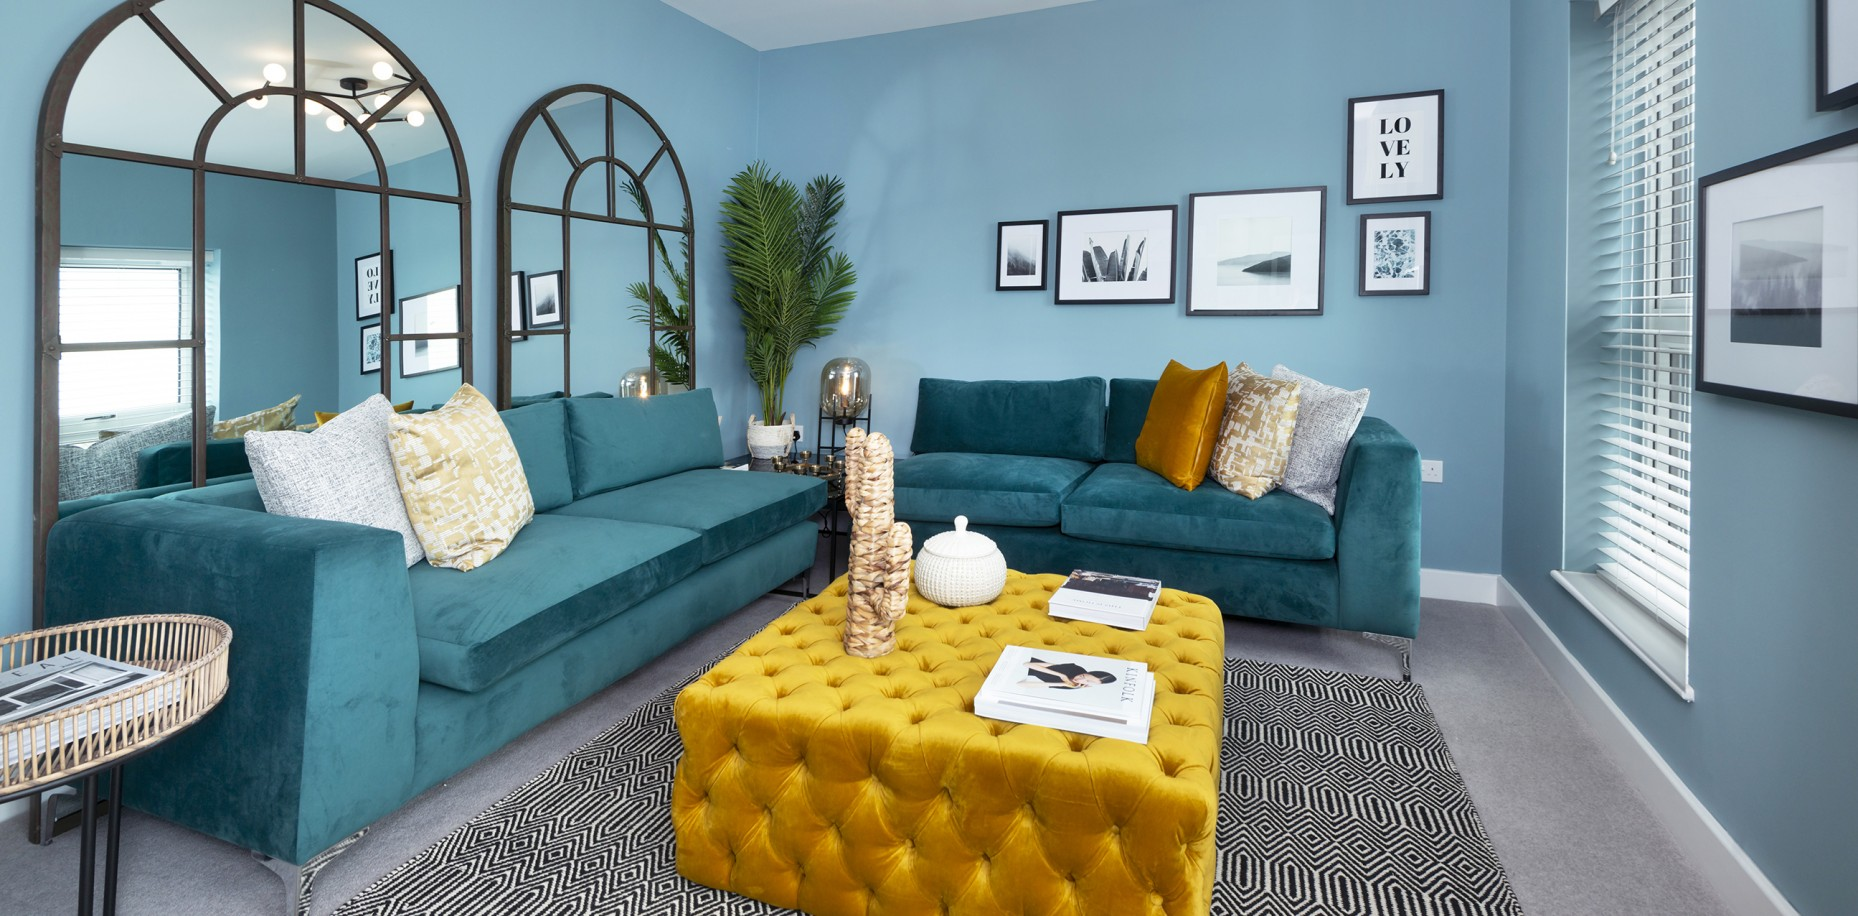 How we can make our homes inspiring, comfortable and practical with interior design.